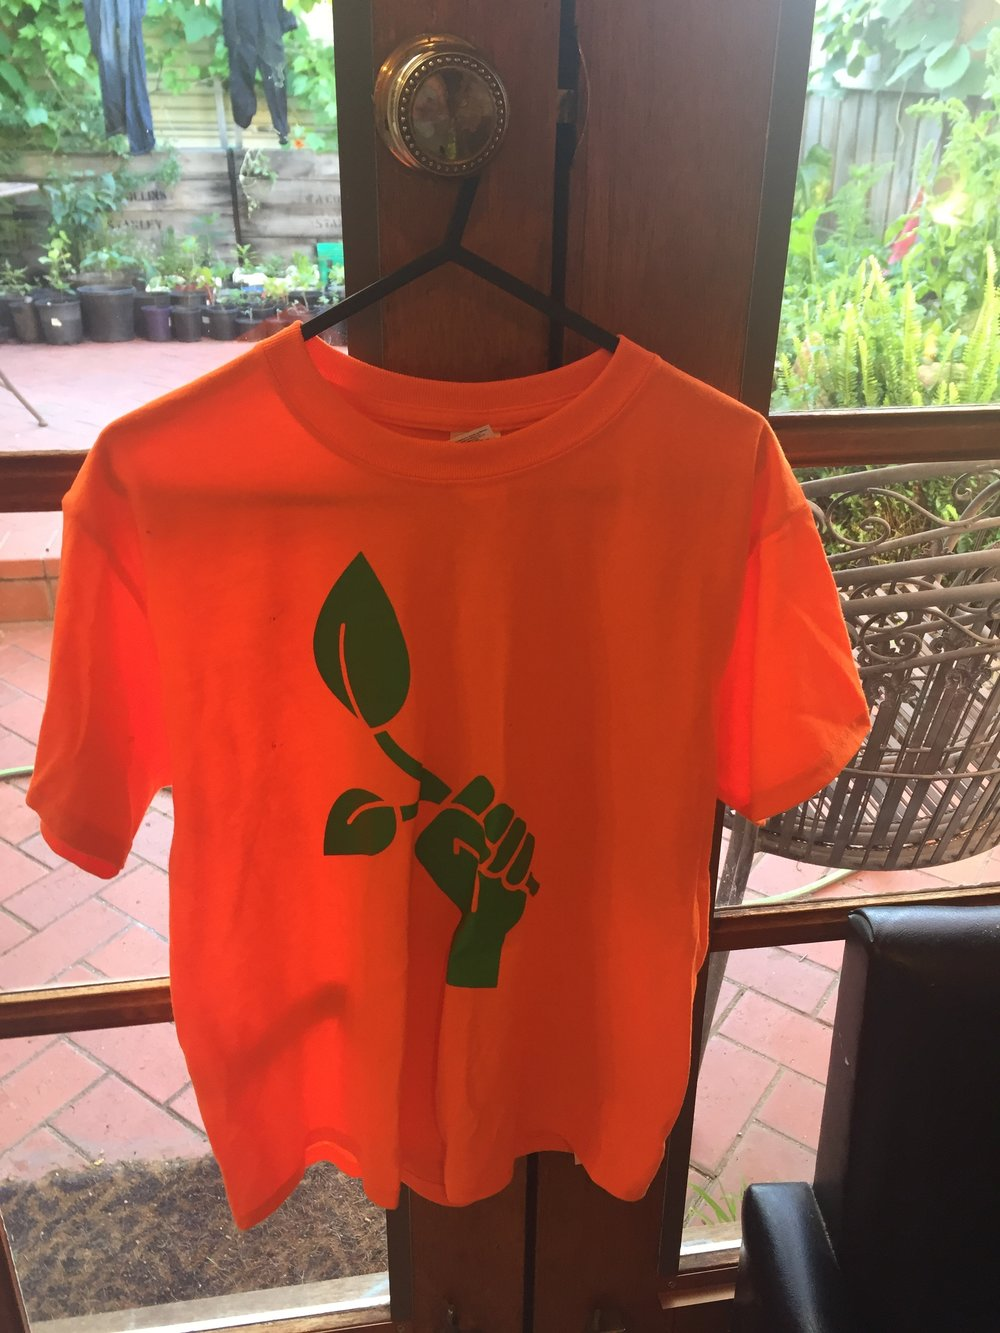 - Fluro T-shirt small sizes only $25 (price includes a $12 donation to UUF)